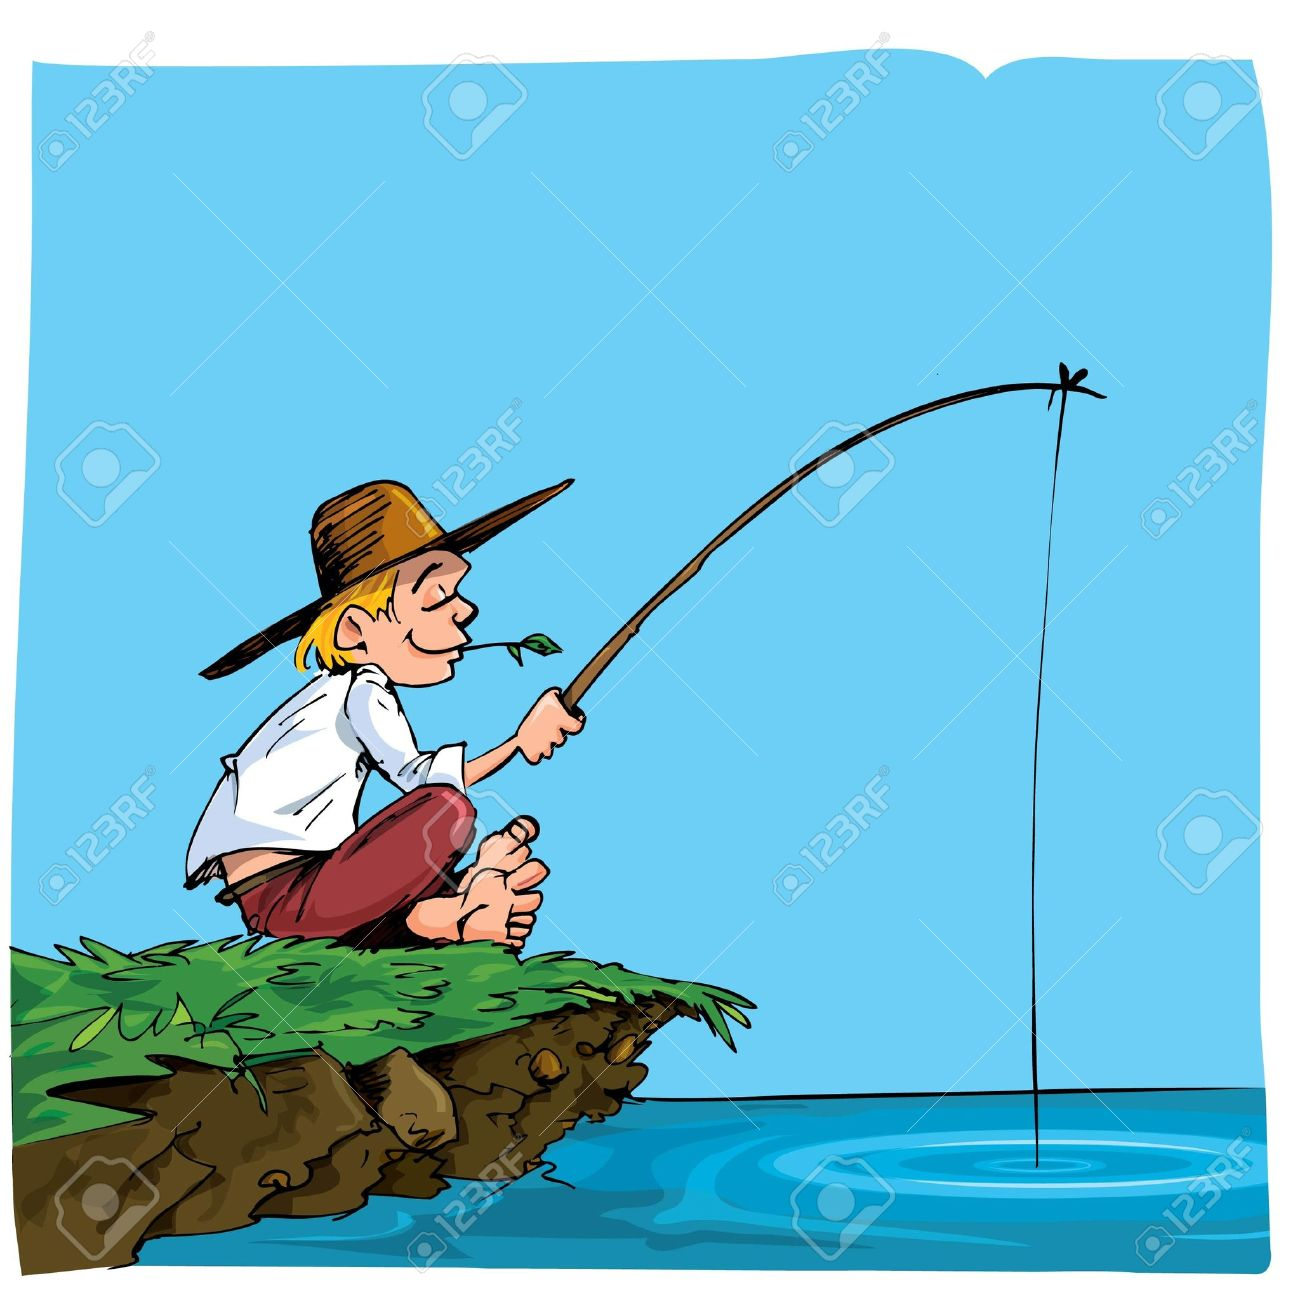 Riverbank clipart clipart panda free clipart images for Where to go fishing